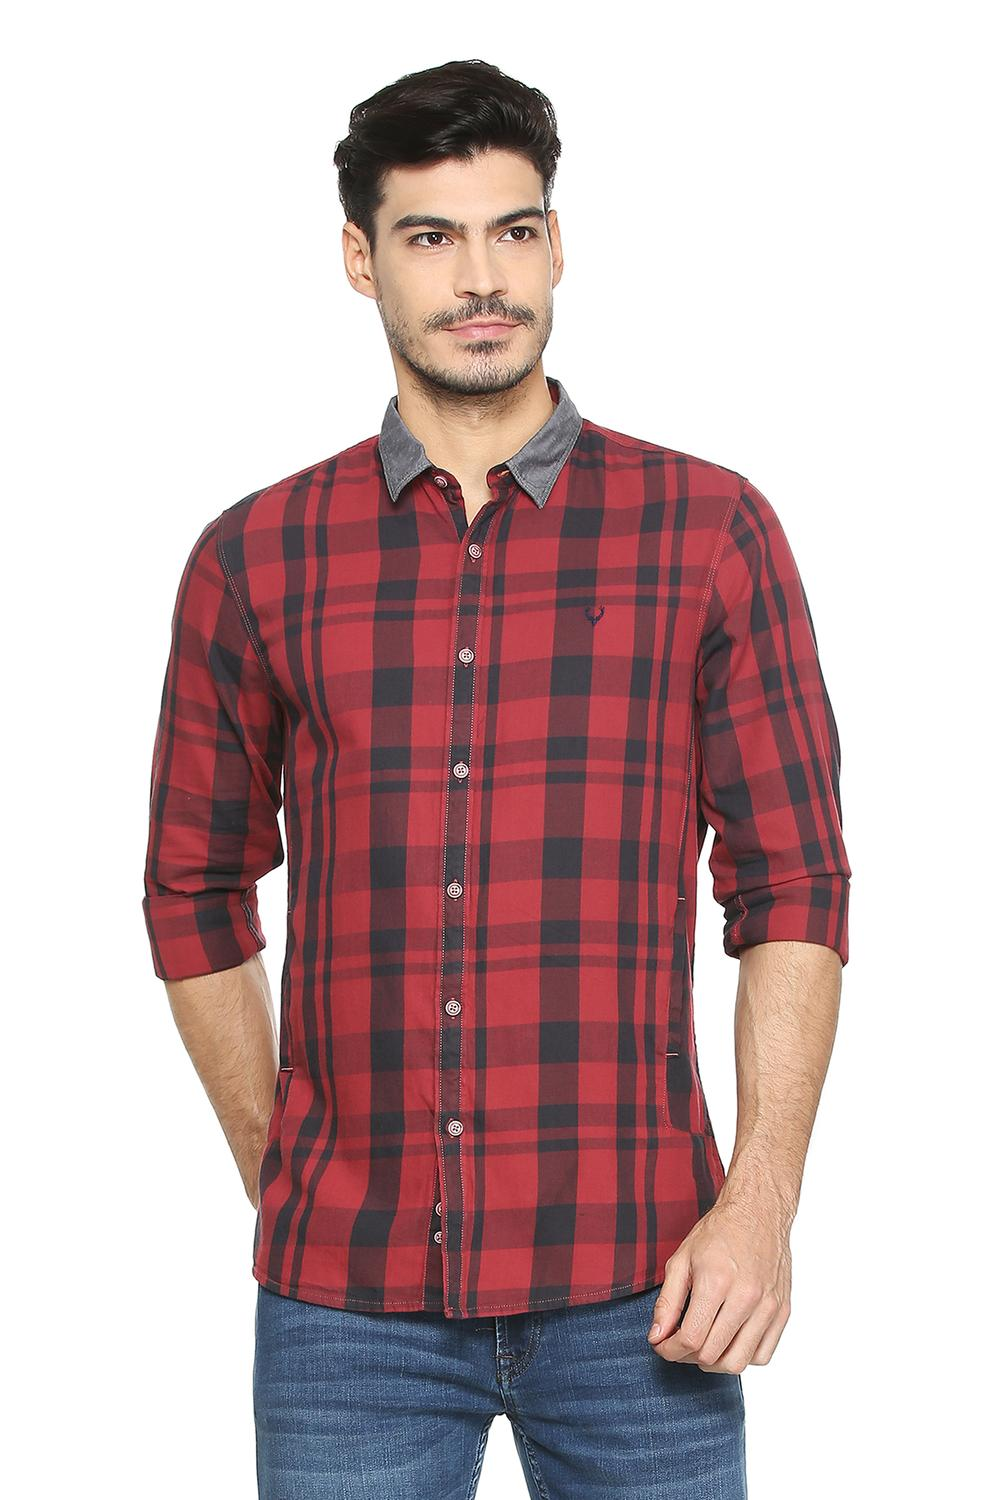 566888315 Solly Jeans Co Shirts, Allen Solly Maroon Shirt for Men at Allensolly.com